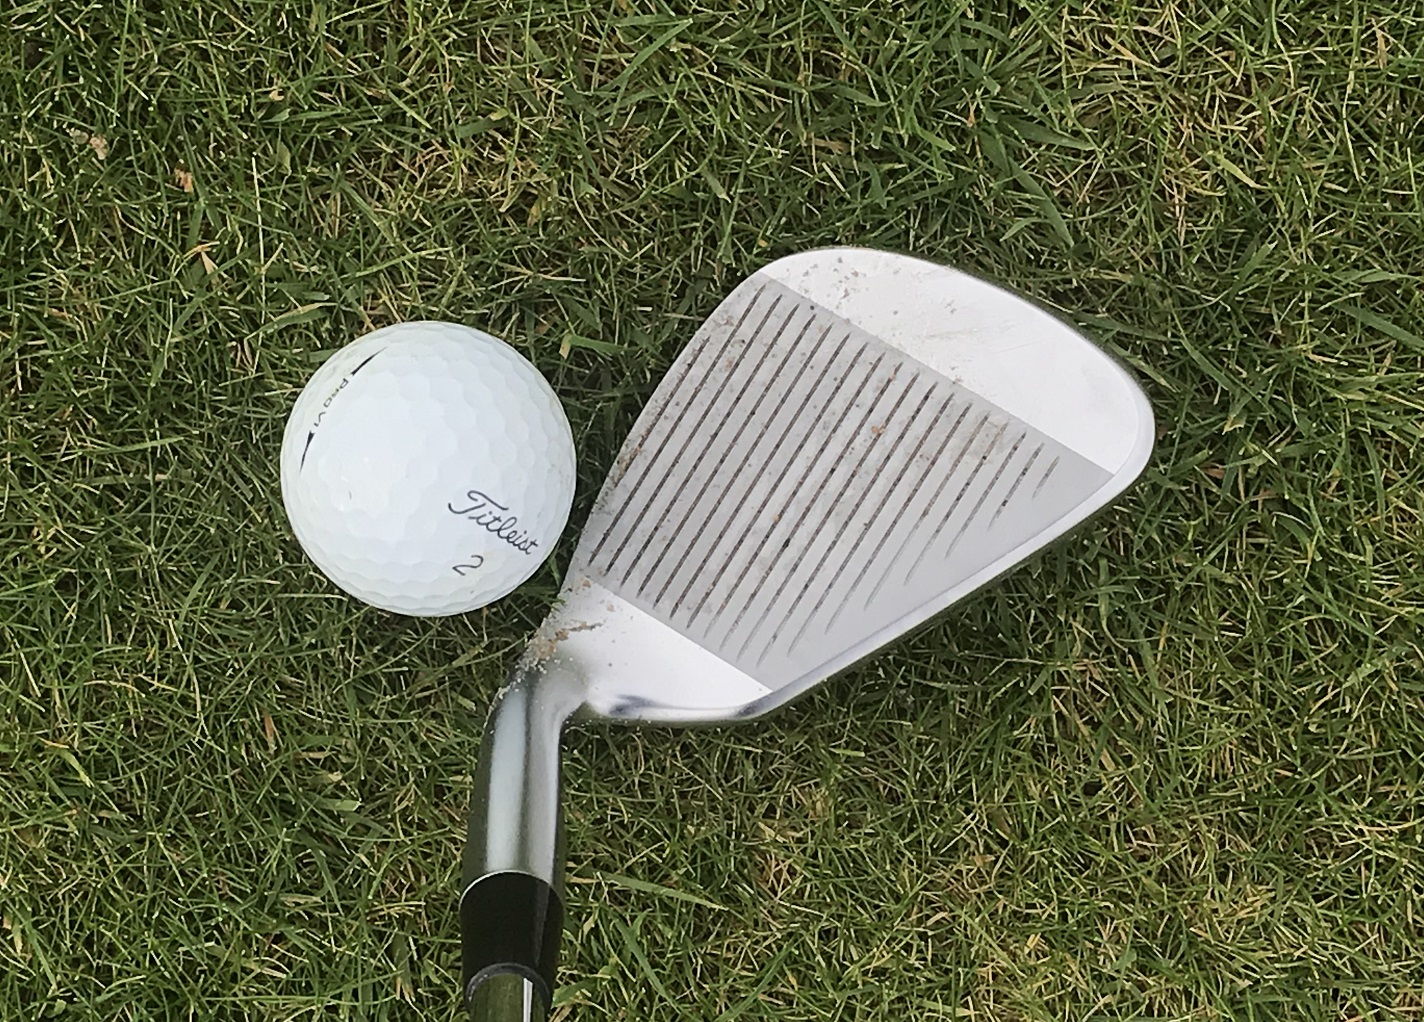 [Test] Ping Glide 3.0-wedgar